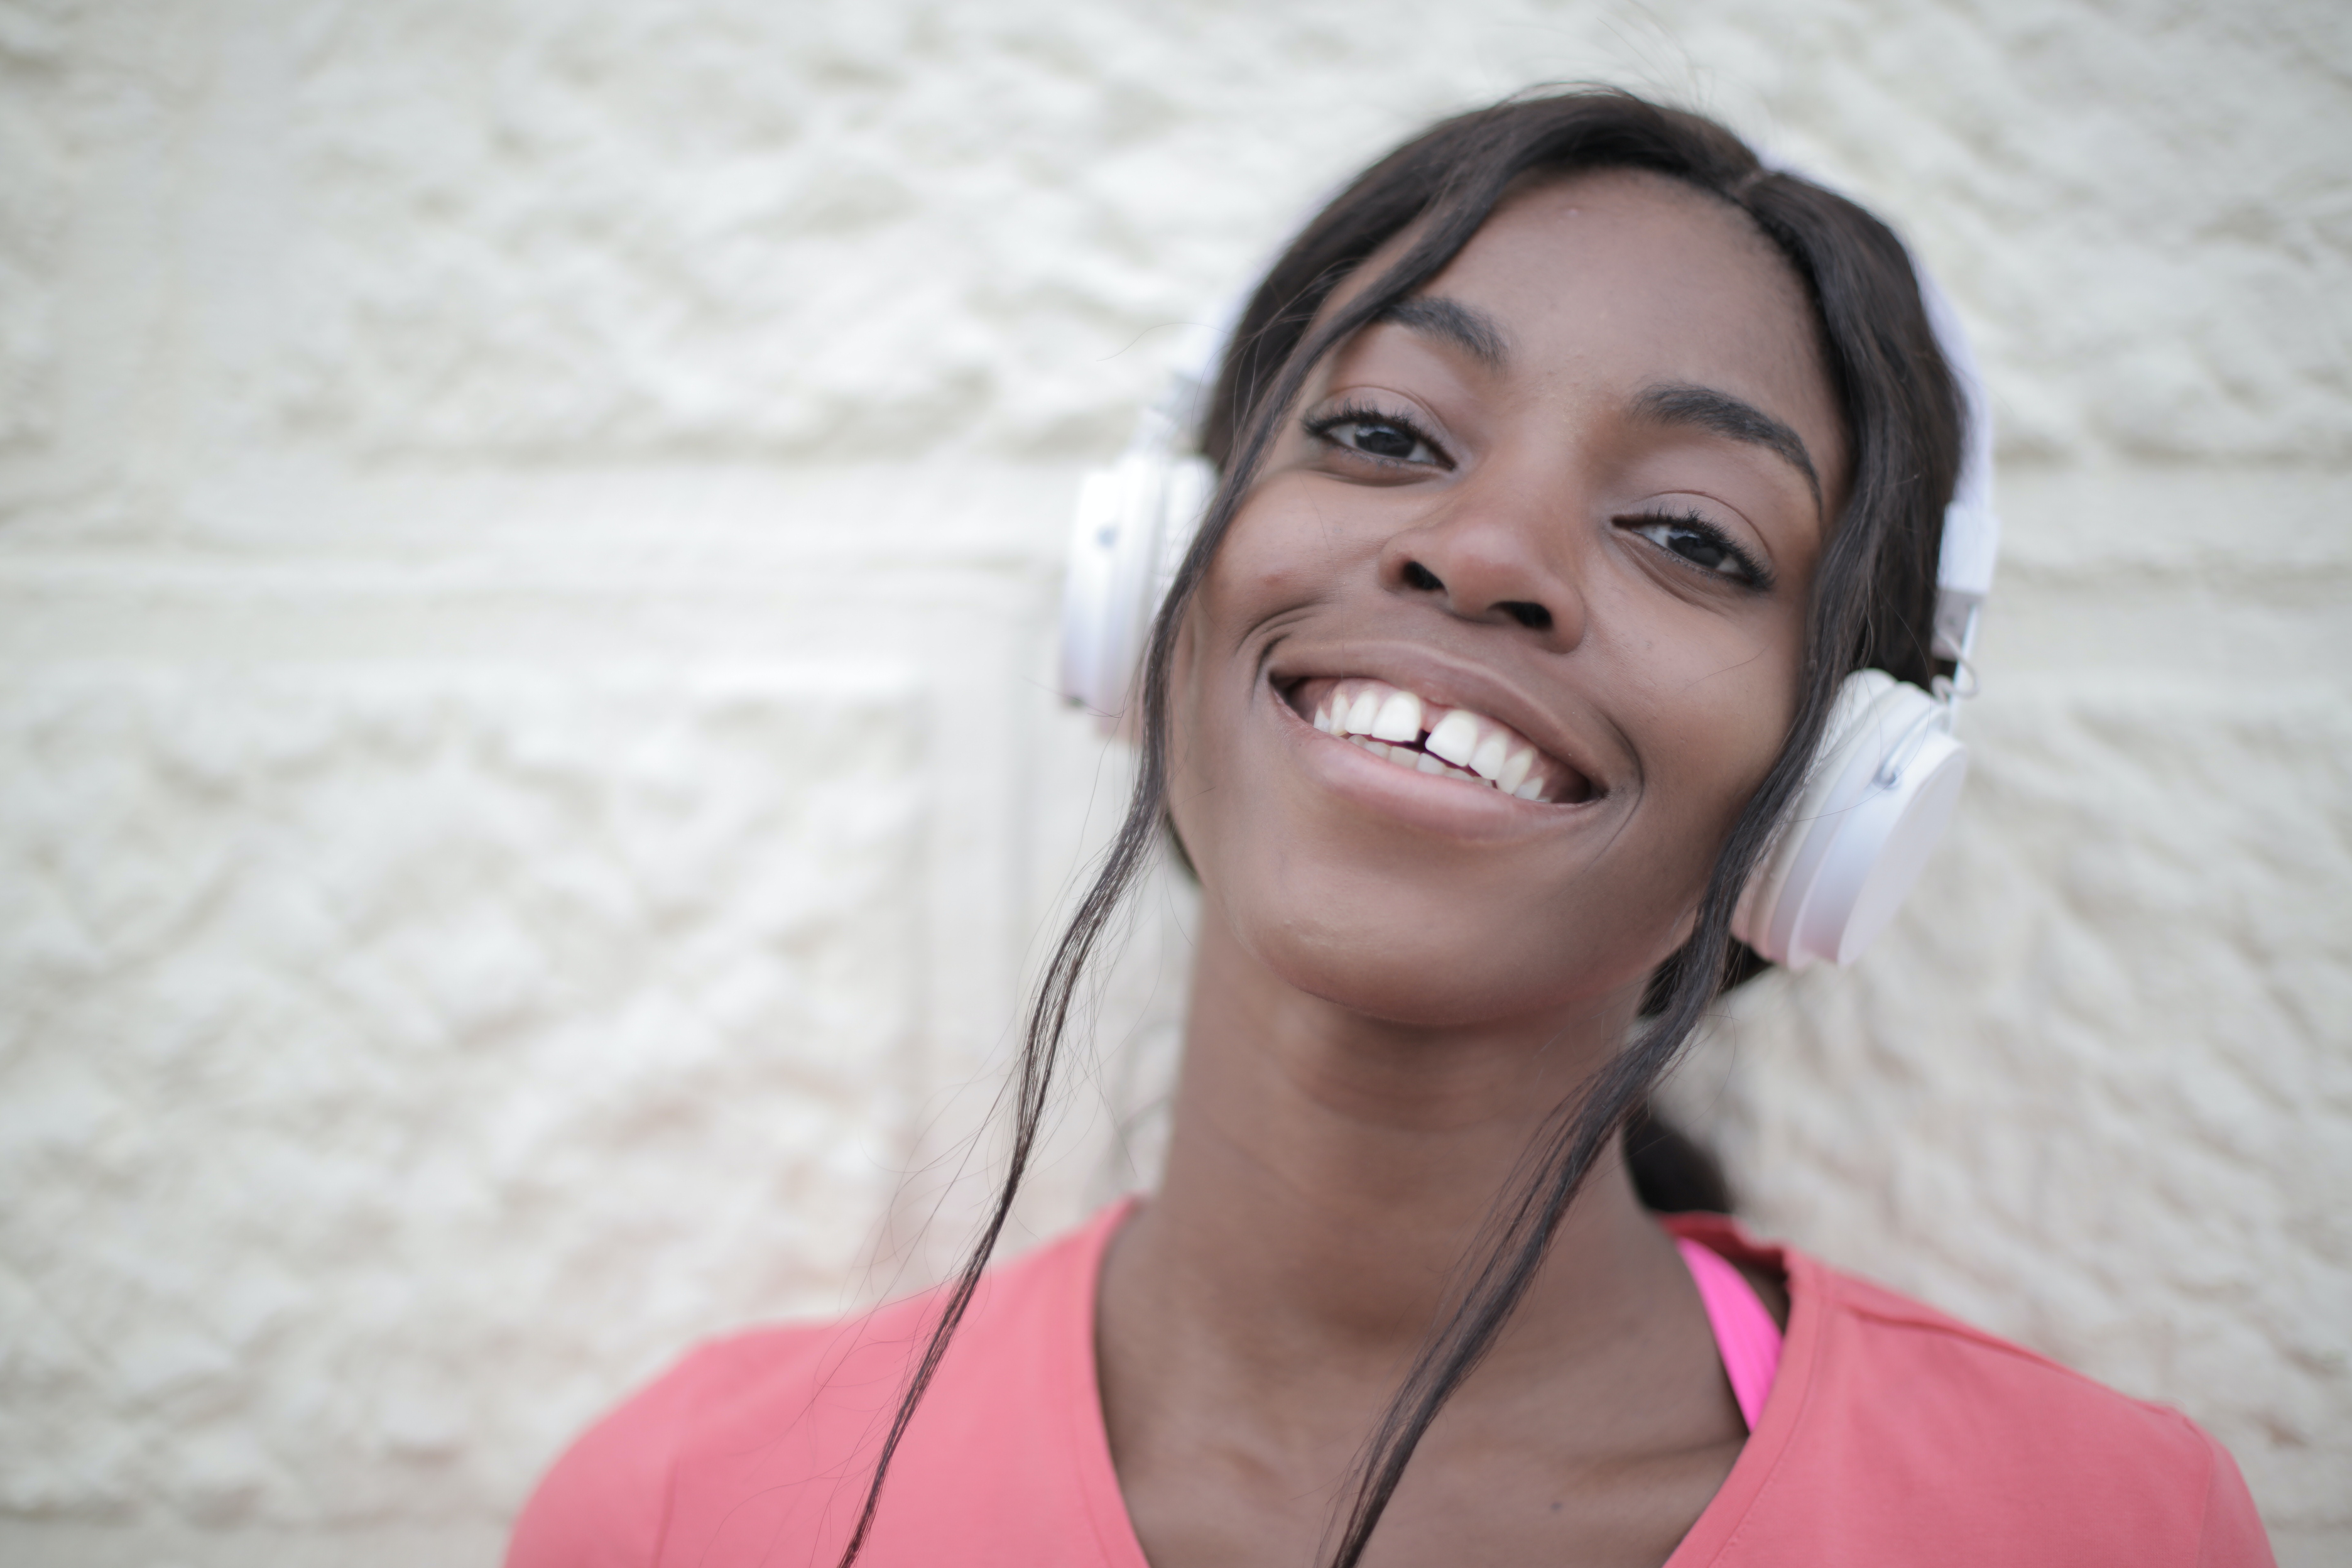 An image of a woman wearing white headphones and smiling at the camera